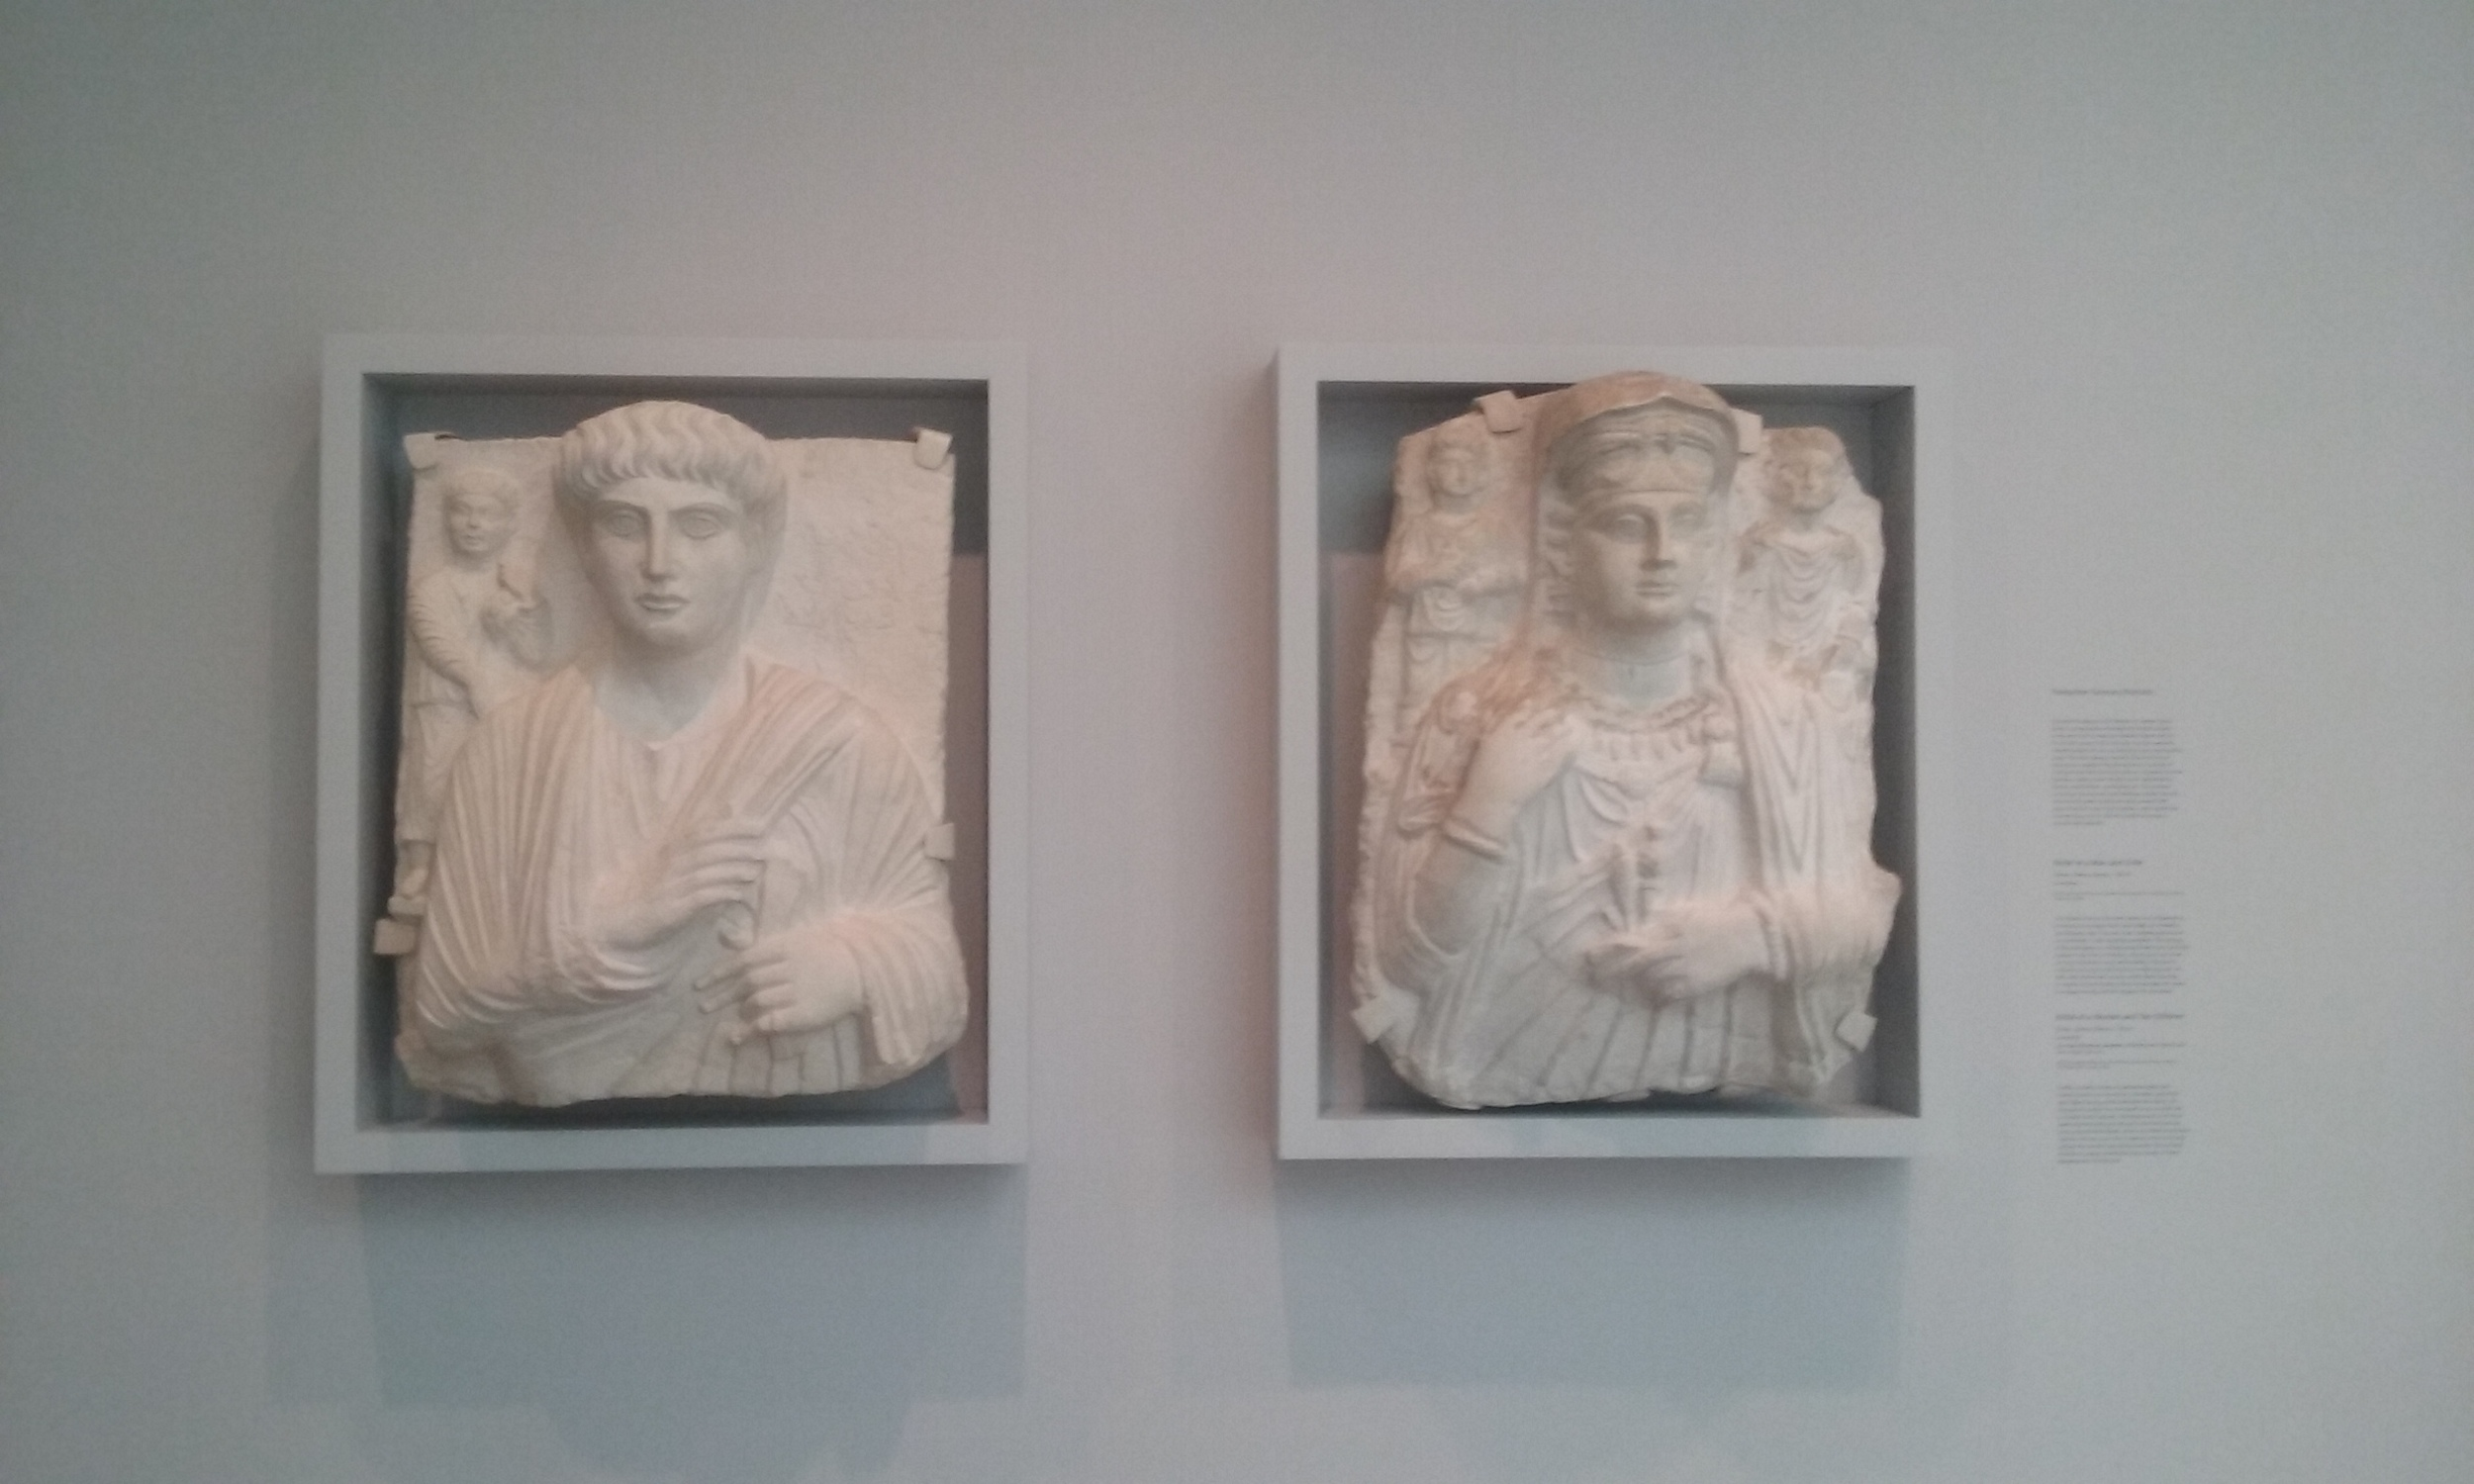 Relief of a Man and Child (1998.3) and Relief of a Woman and Two Children (1906.3) from Palmyra, c. 150 CE. (Fogg Museum, Harvard University)